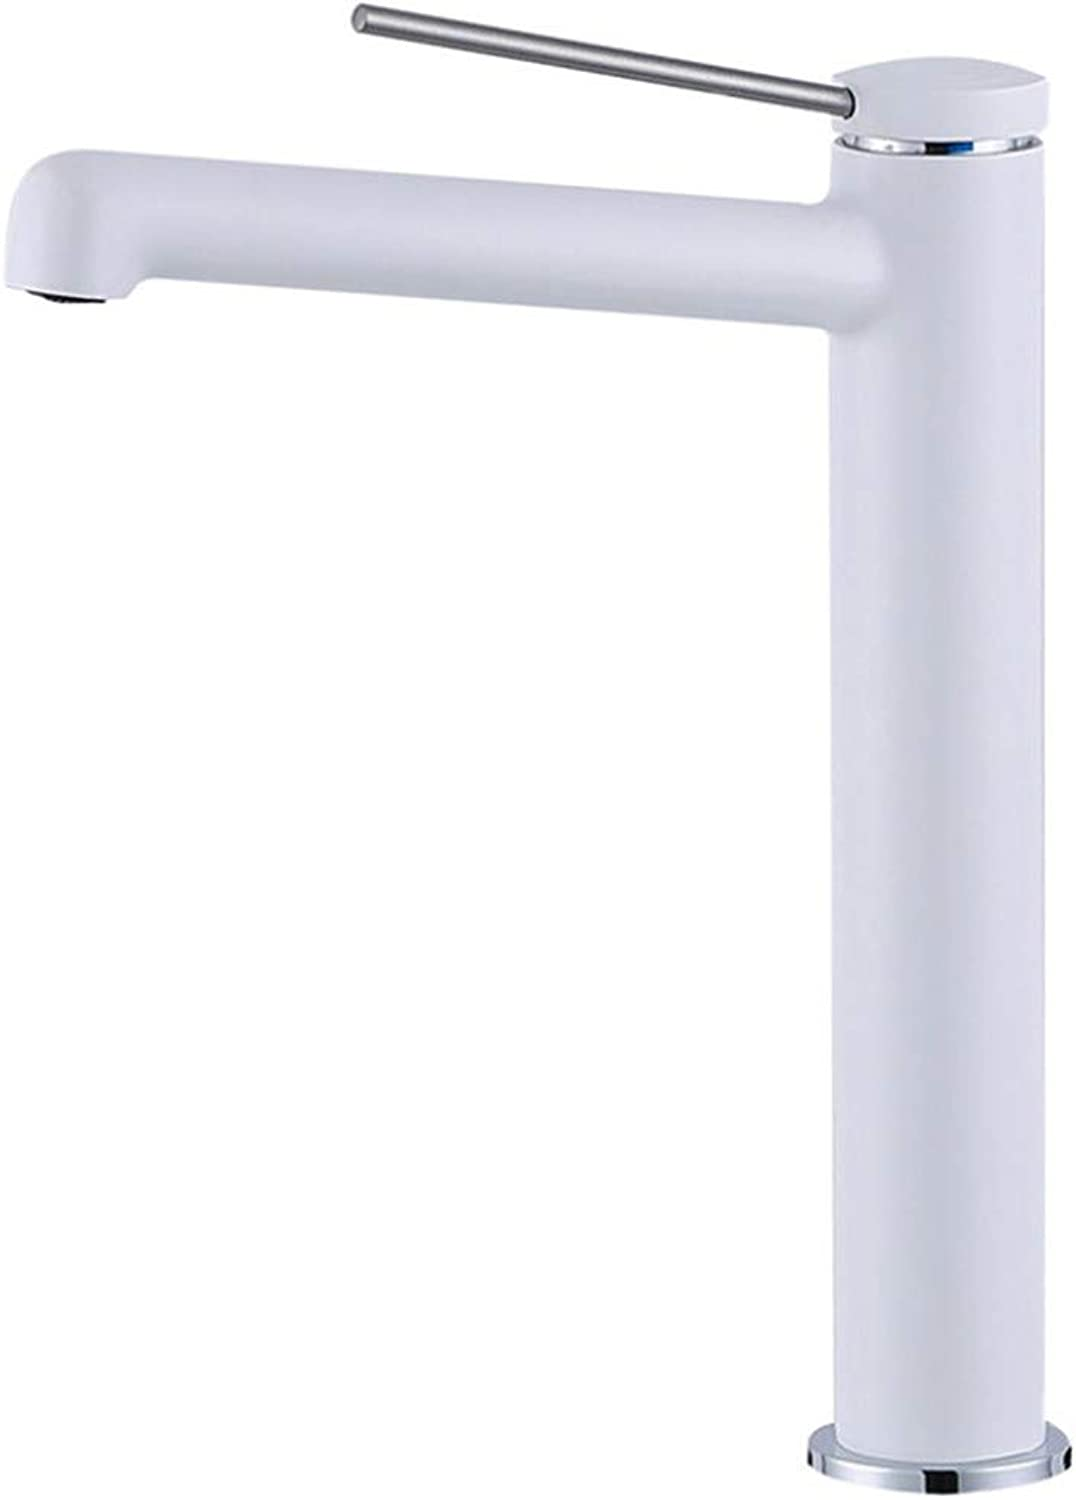 Bathroom Taps Basin Tap Taps for Bathroom Sinkwhite Baking Paint, Cold and Hot Lengthened Mouth, Face Basin, Faucet, Bathroom Cabinet, Double Control, High Pots, Pots and Faucets.